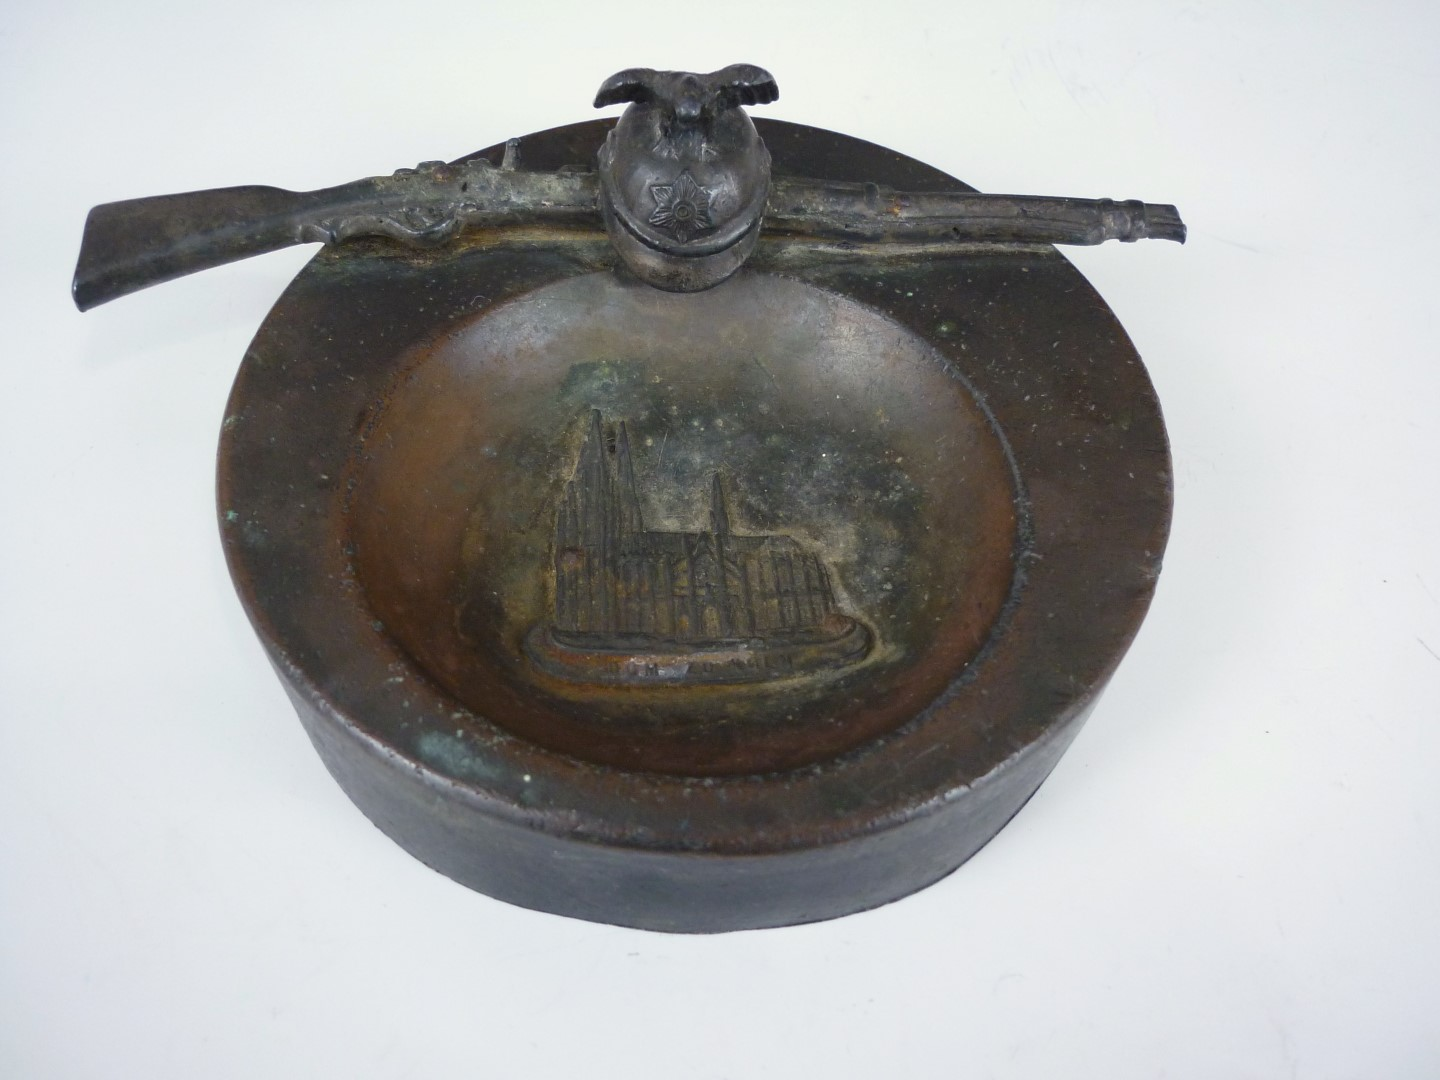 Lot 72 - An early 20th Century German bronzed spelter dish modelled as a Garde du Corps helmet and rifle,